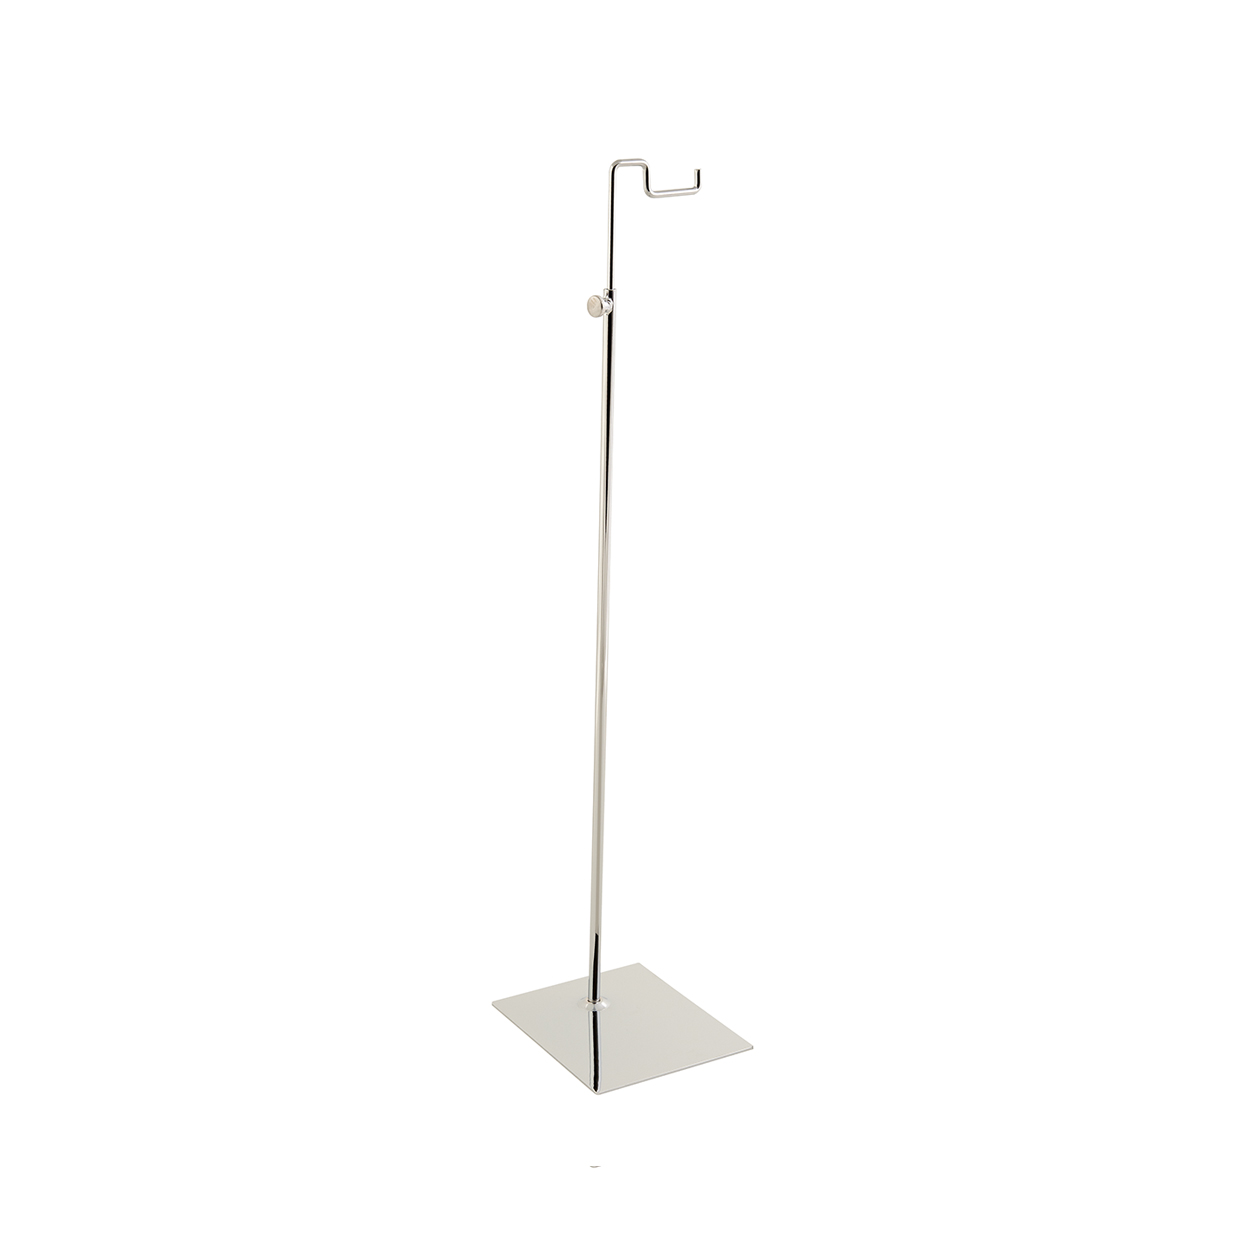 Large Budget Handbag Display Stand With Solid Base and adjustable height.